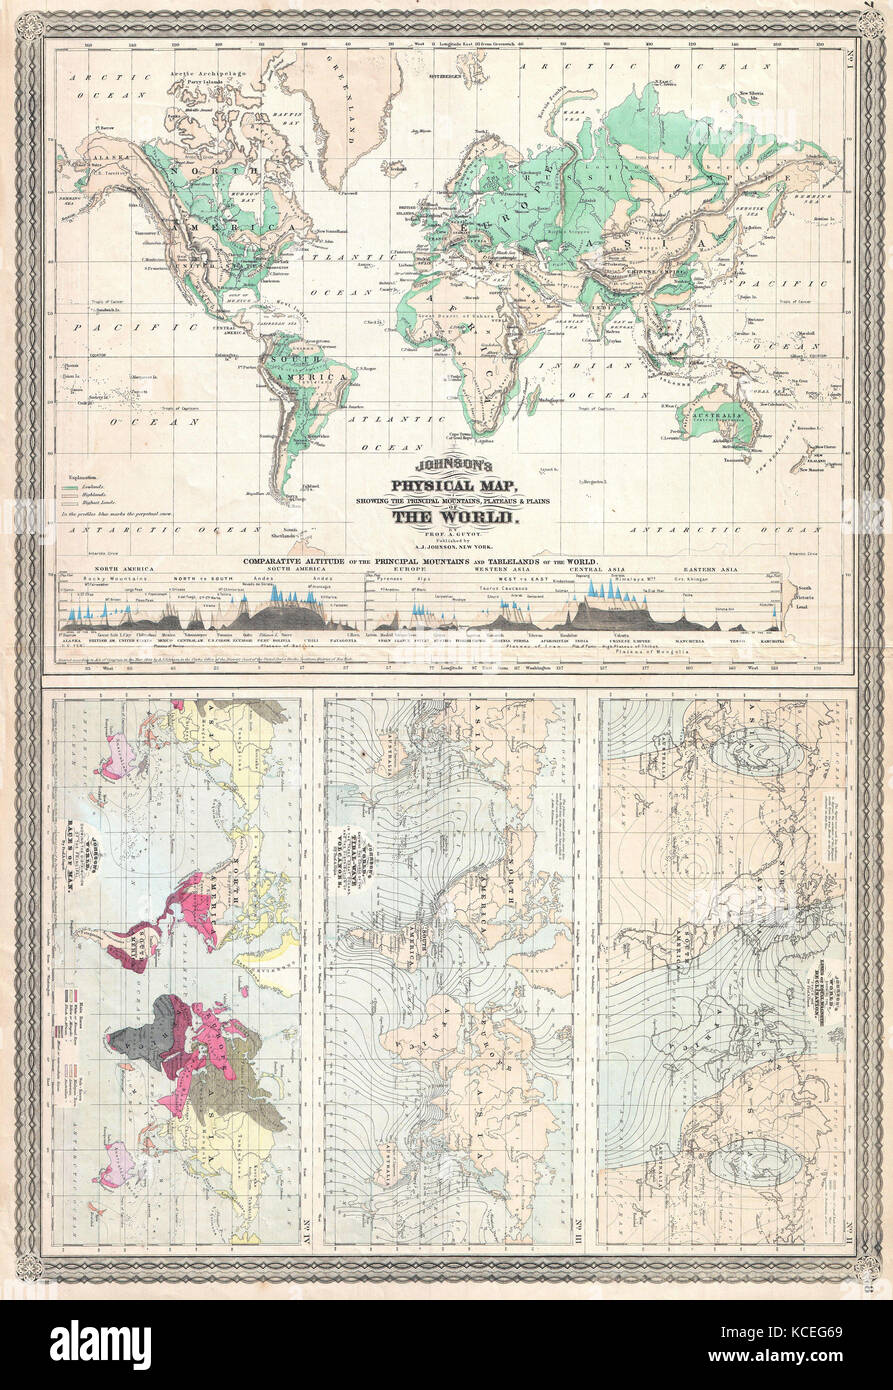 1870 johnson climate map of the world w physical map tidal map 1870 johnson climate map of the world w physical map tidal map races and declination gumiabroncs Choice Image